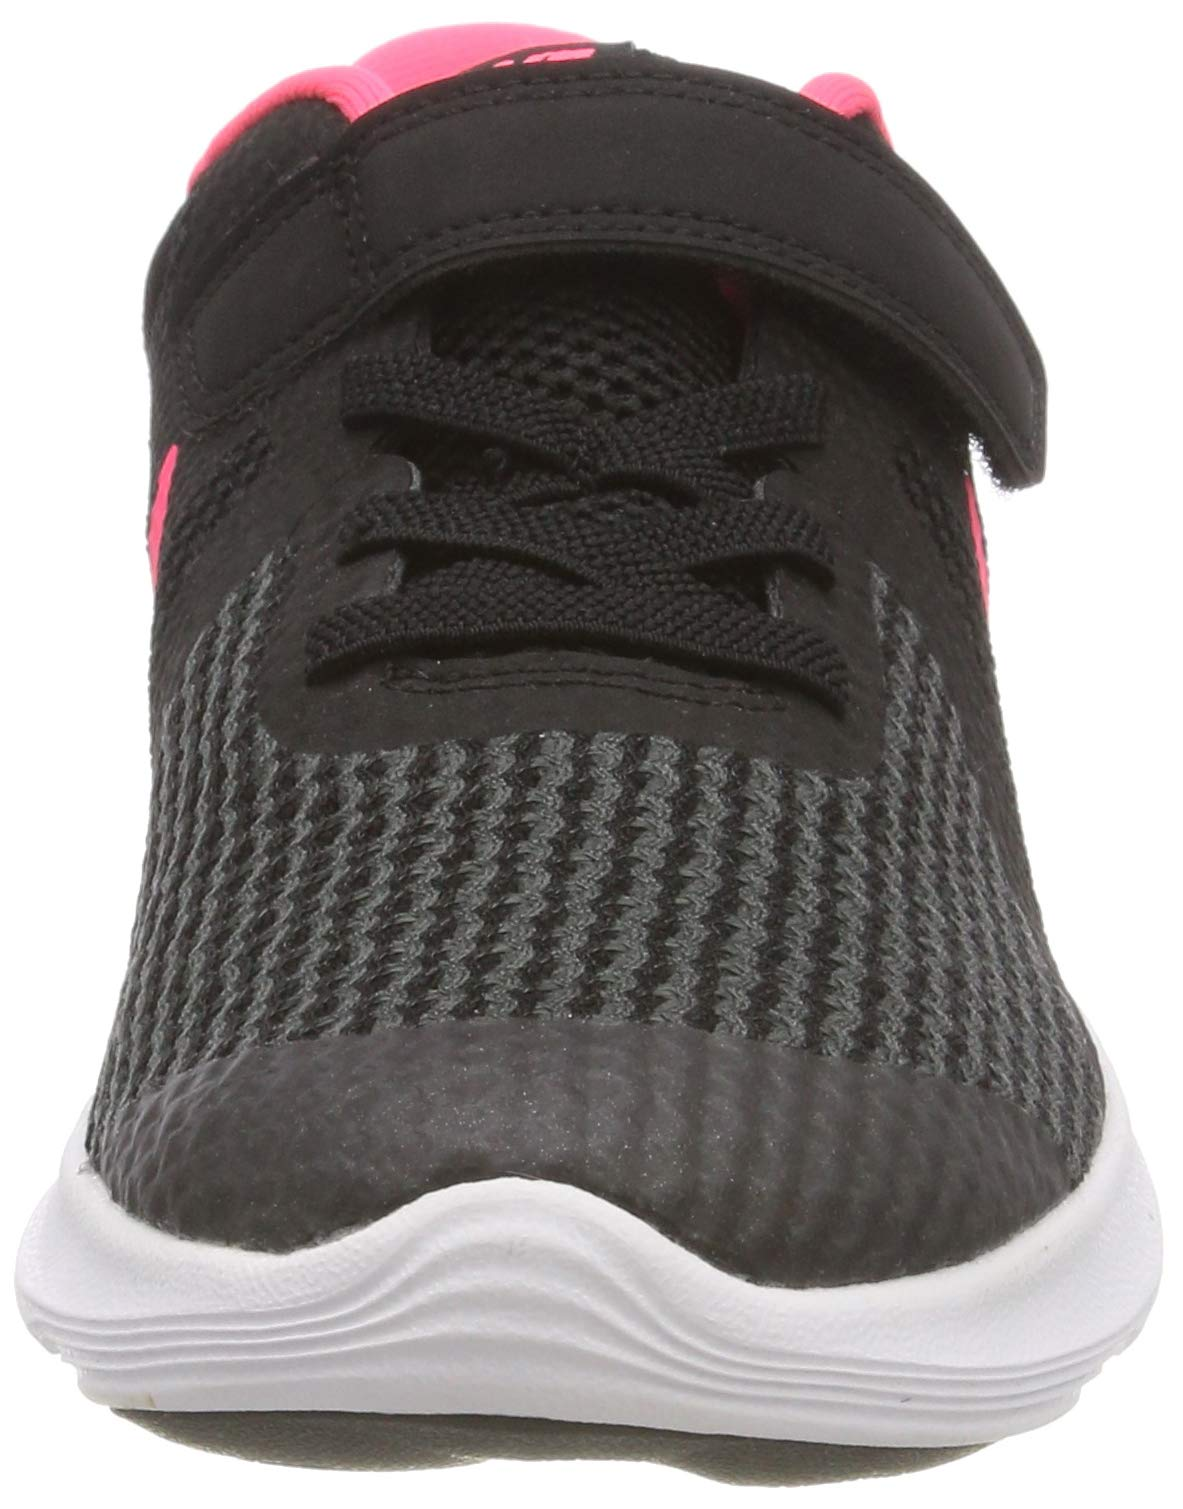 Nike Girls' Revolution 4 (PSV) Running Shoe, Black/Racer Pink - White, 12C Regular US Little Kid by Nike (Image #4)